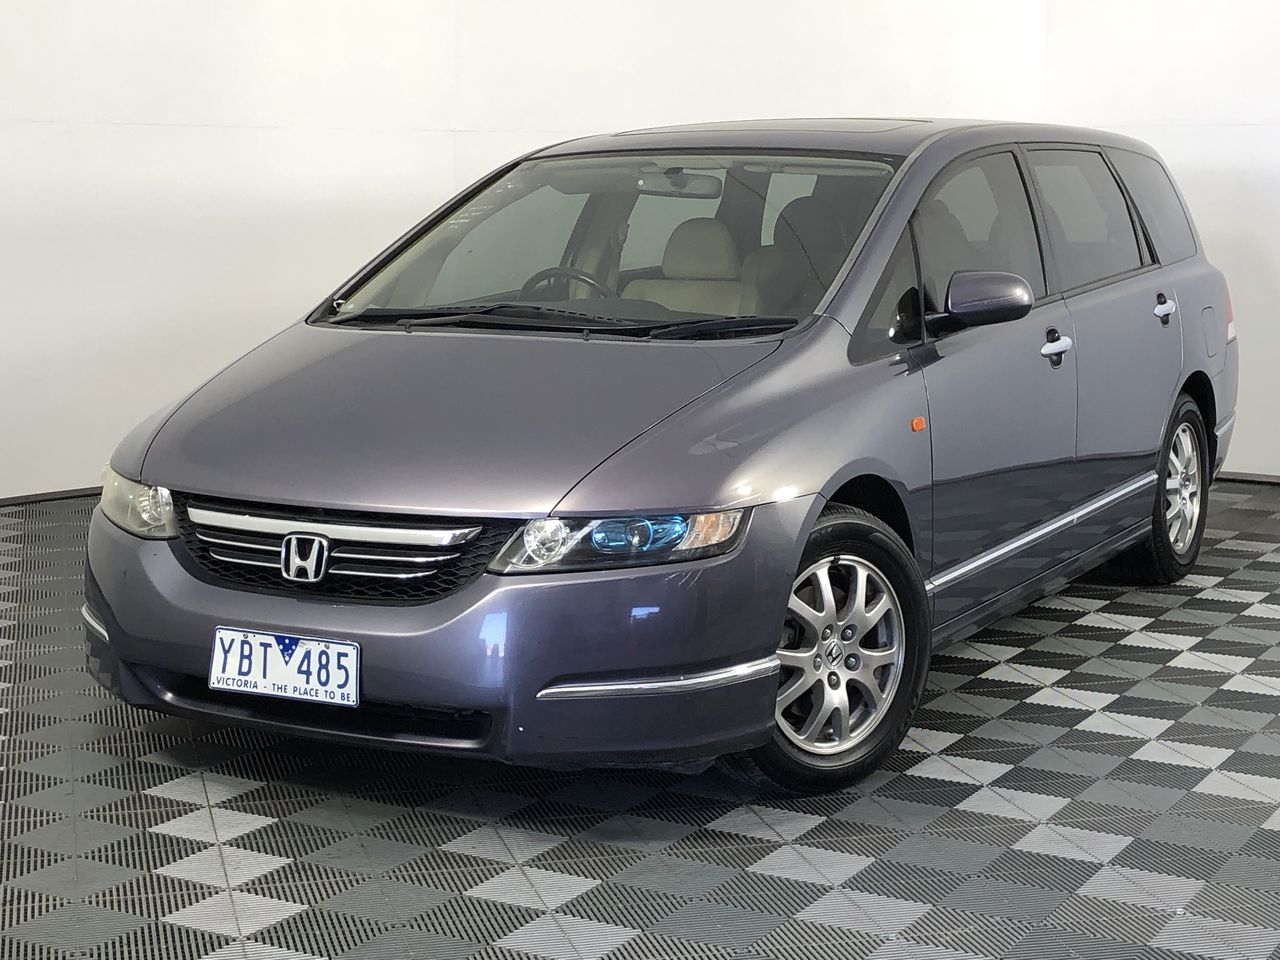 2005 Honda Odyssey Luxury Automatic 7 Seats People Mover